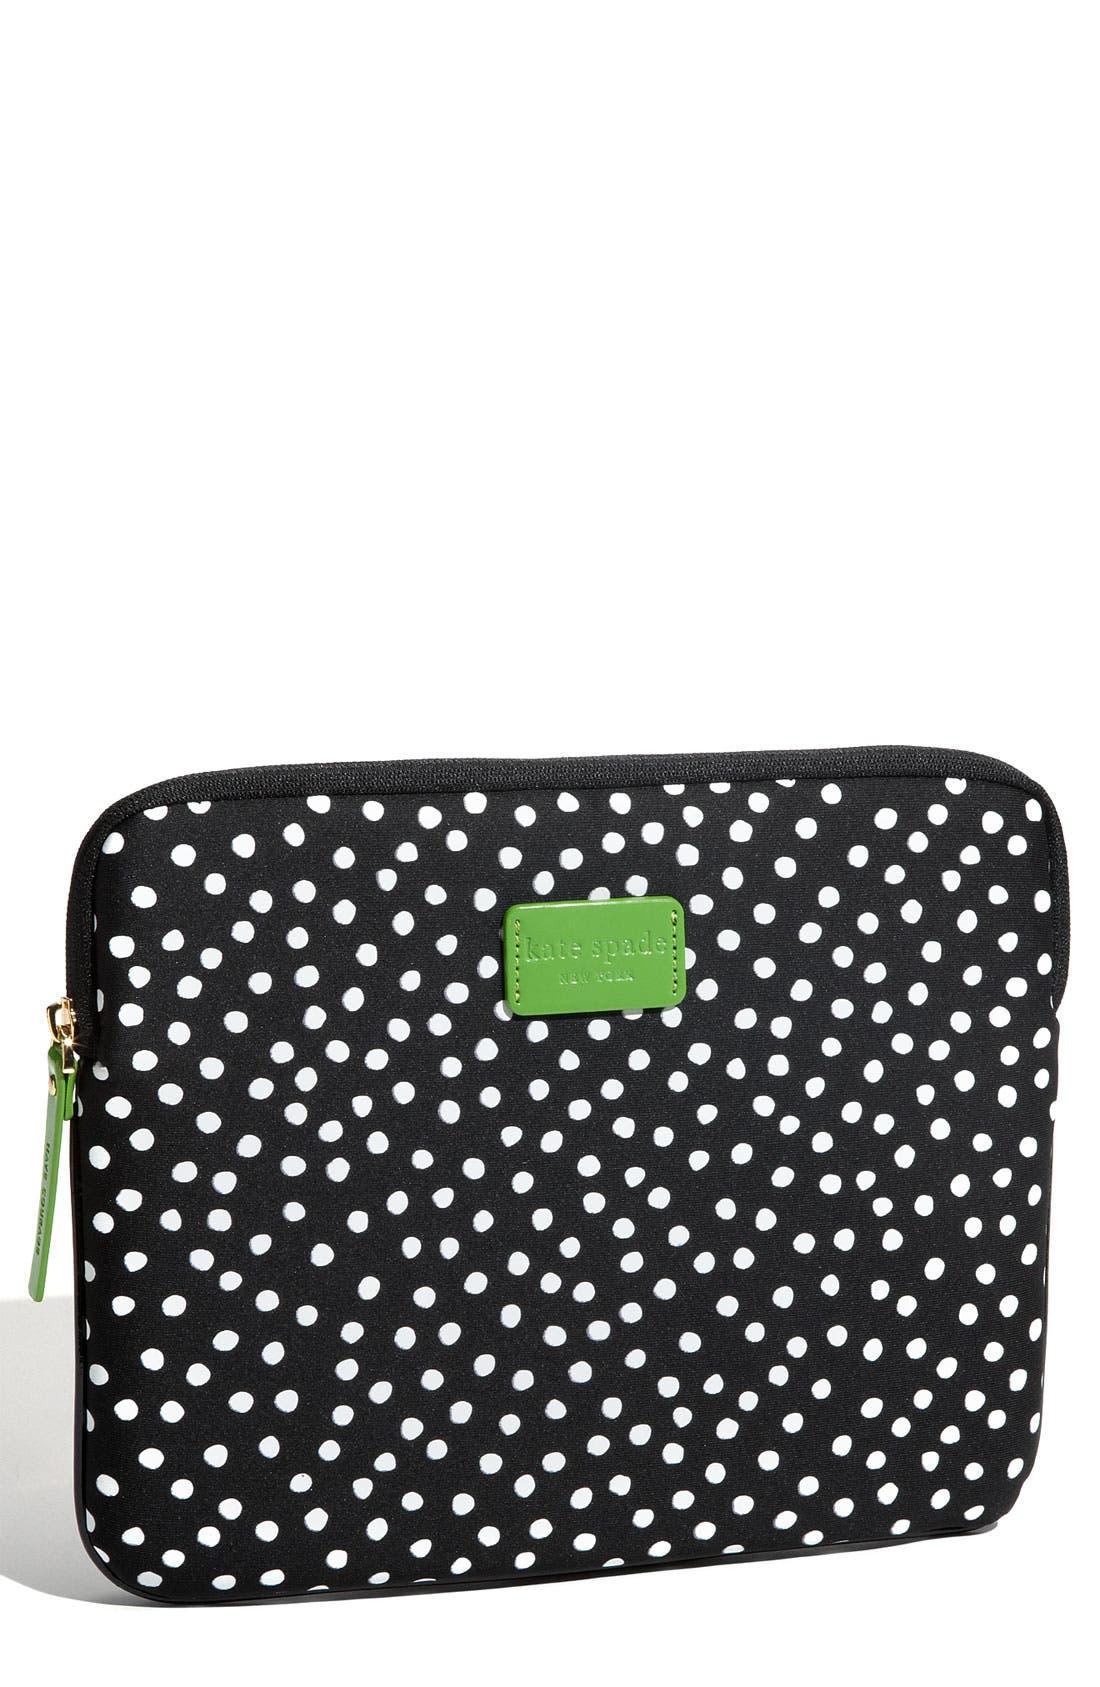 Alternate Image 1 Selected - kate spade new york neoprene iPad sleeve